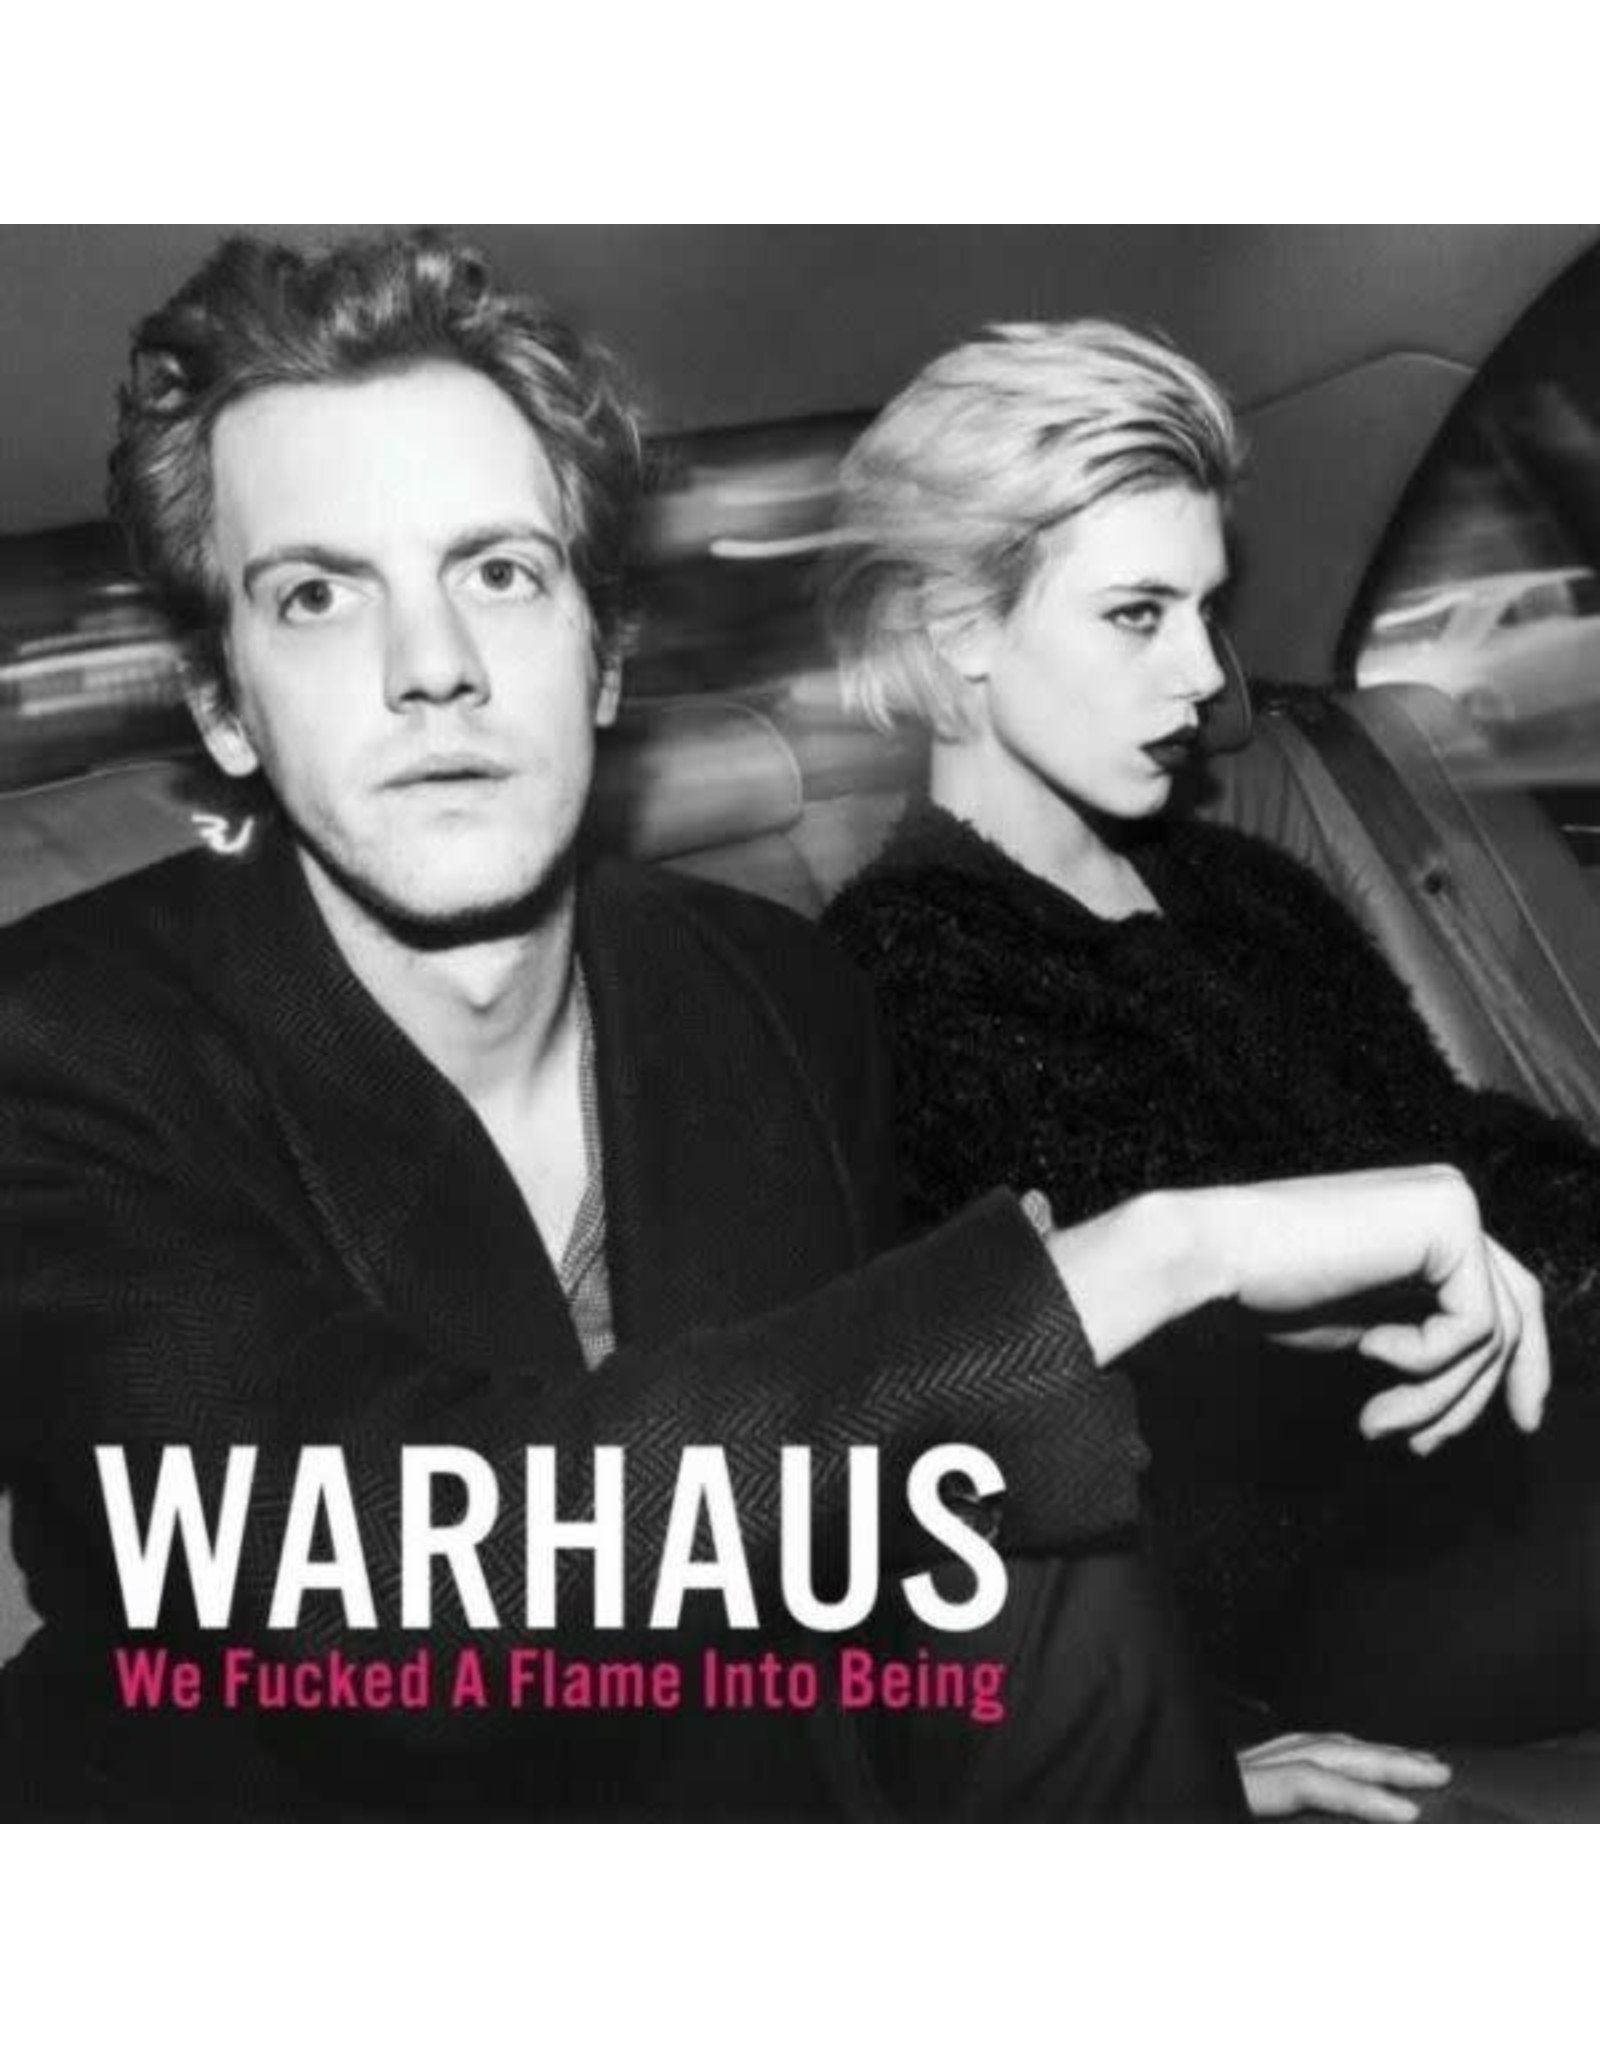 Warhaus - We Fucked A Flame Into Being LP